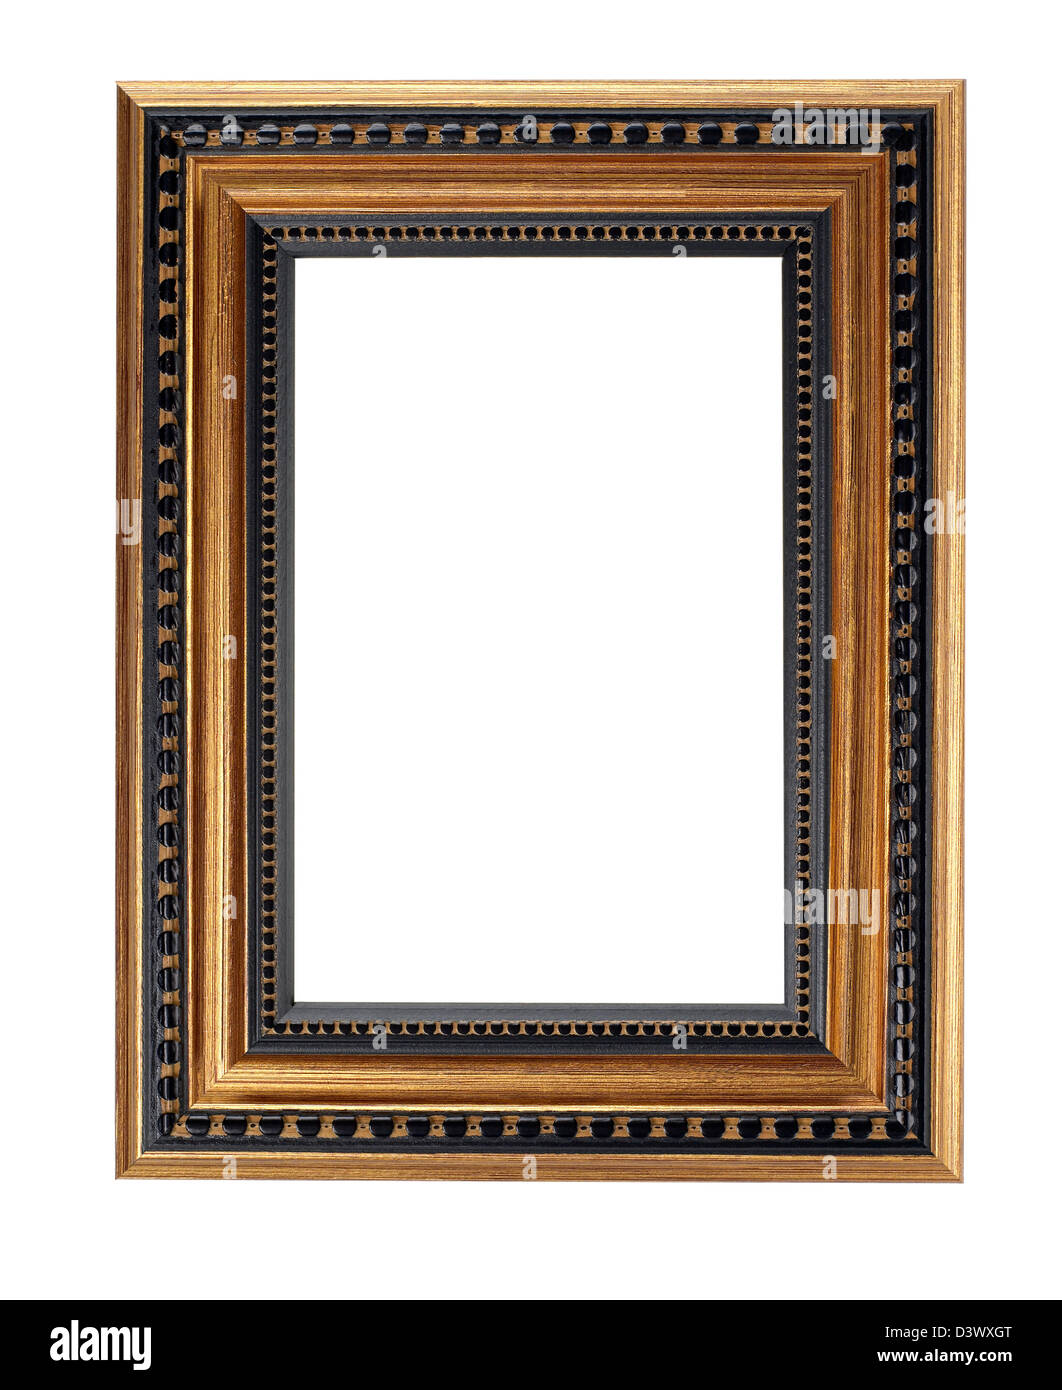 1af87b294fa6 gold and black wood Picture frame Stock Photo  54044728 - Alamy